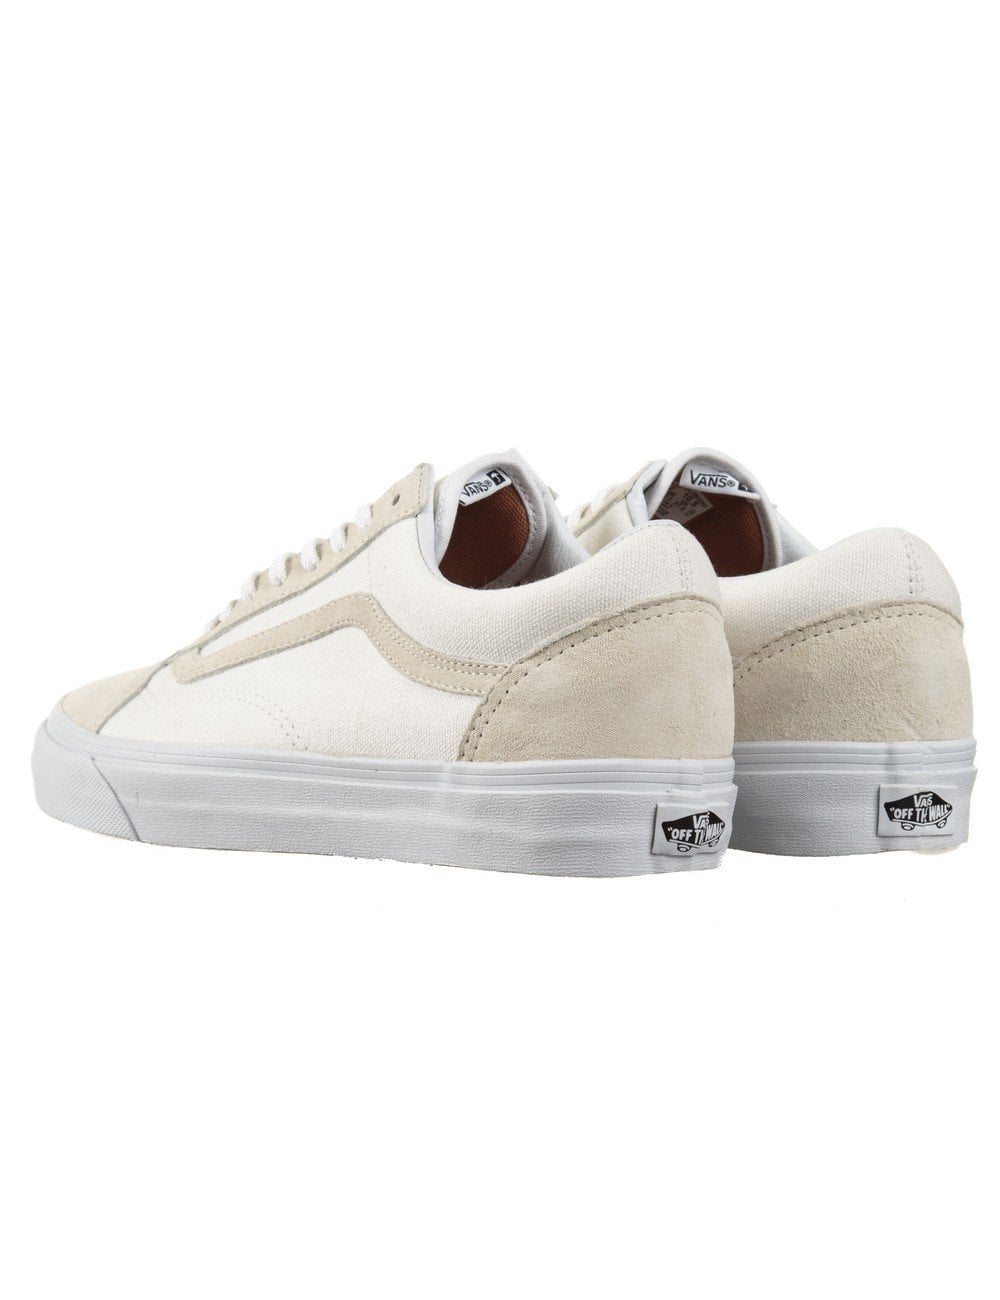 5bf61876f603 Vans California Old Skool Reissue Shoes - True White (Vansguard ...